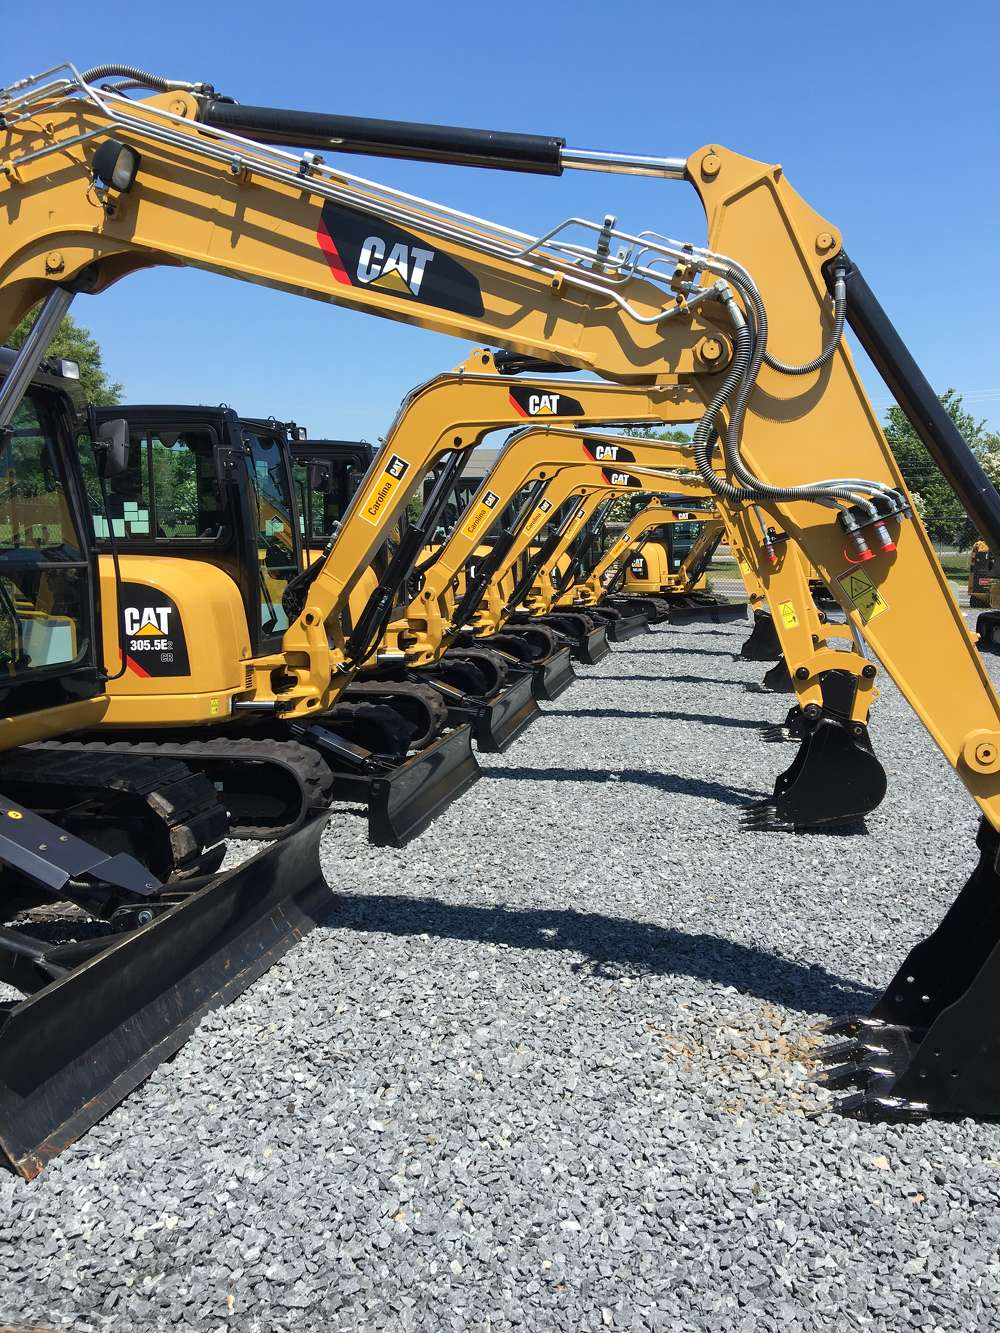 Many of Caterpillar's newest machines were on display for the guests to look over.